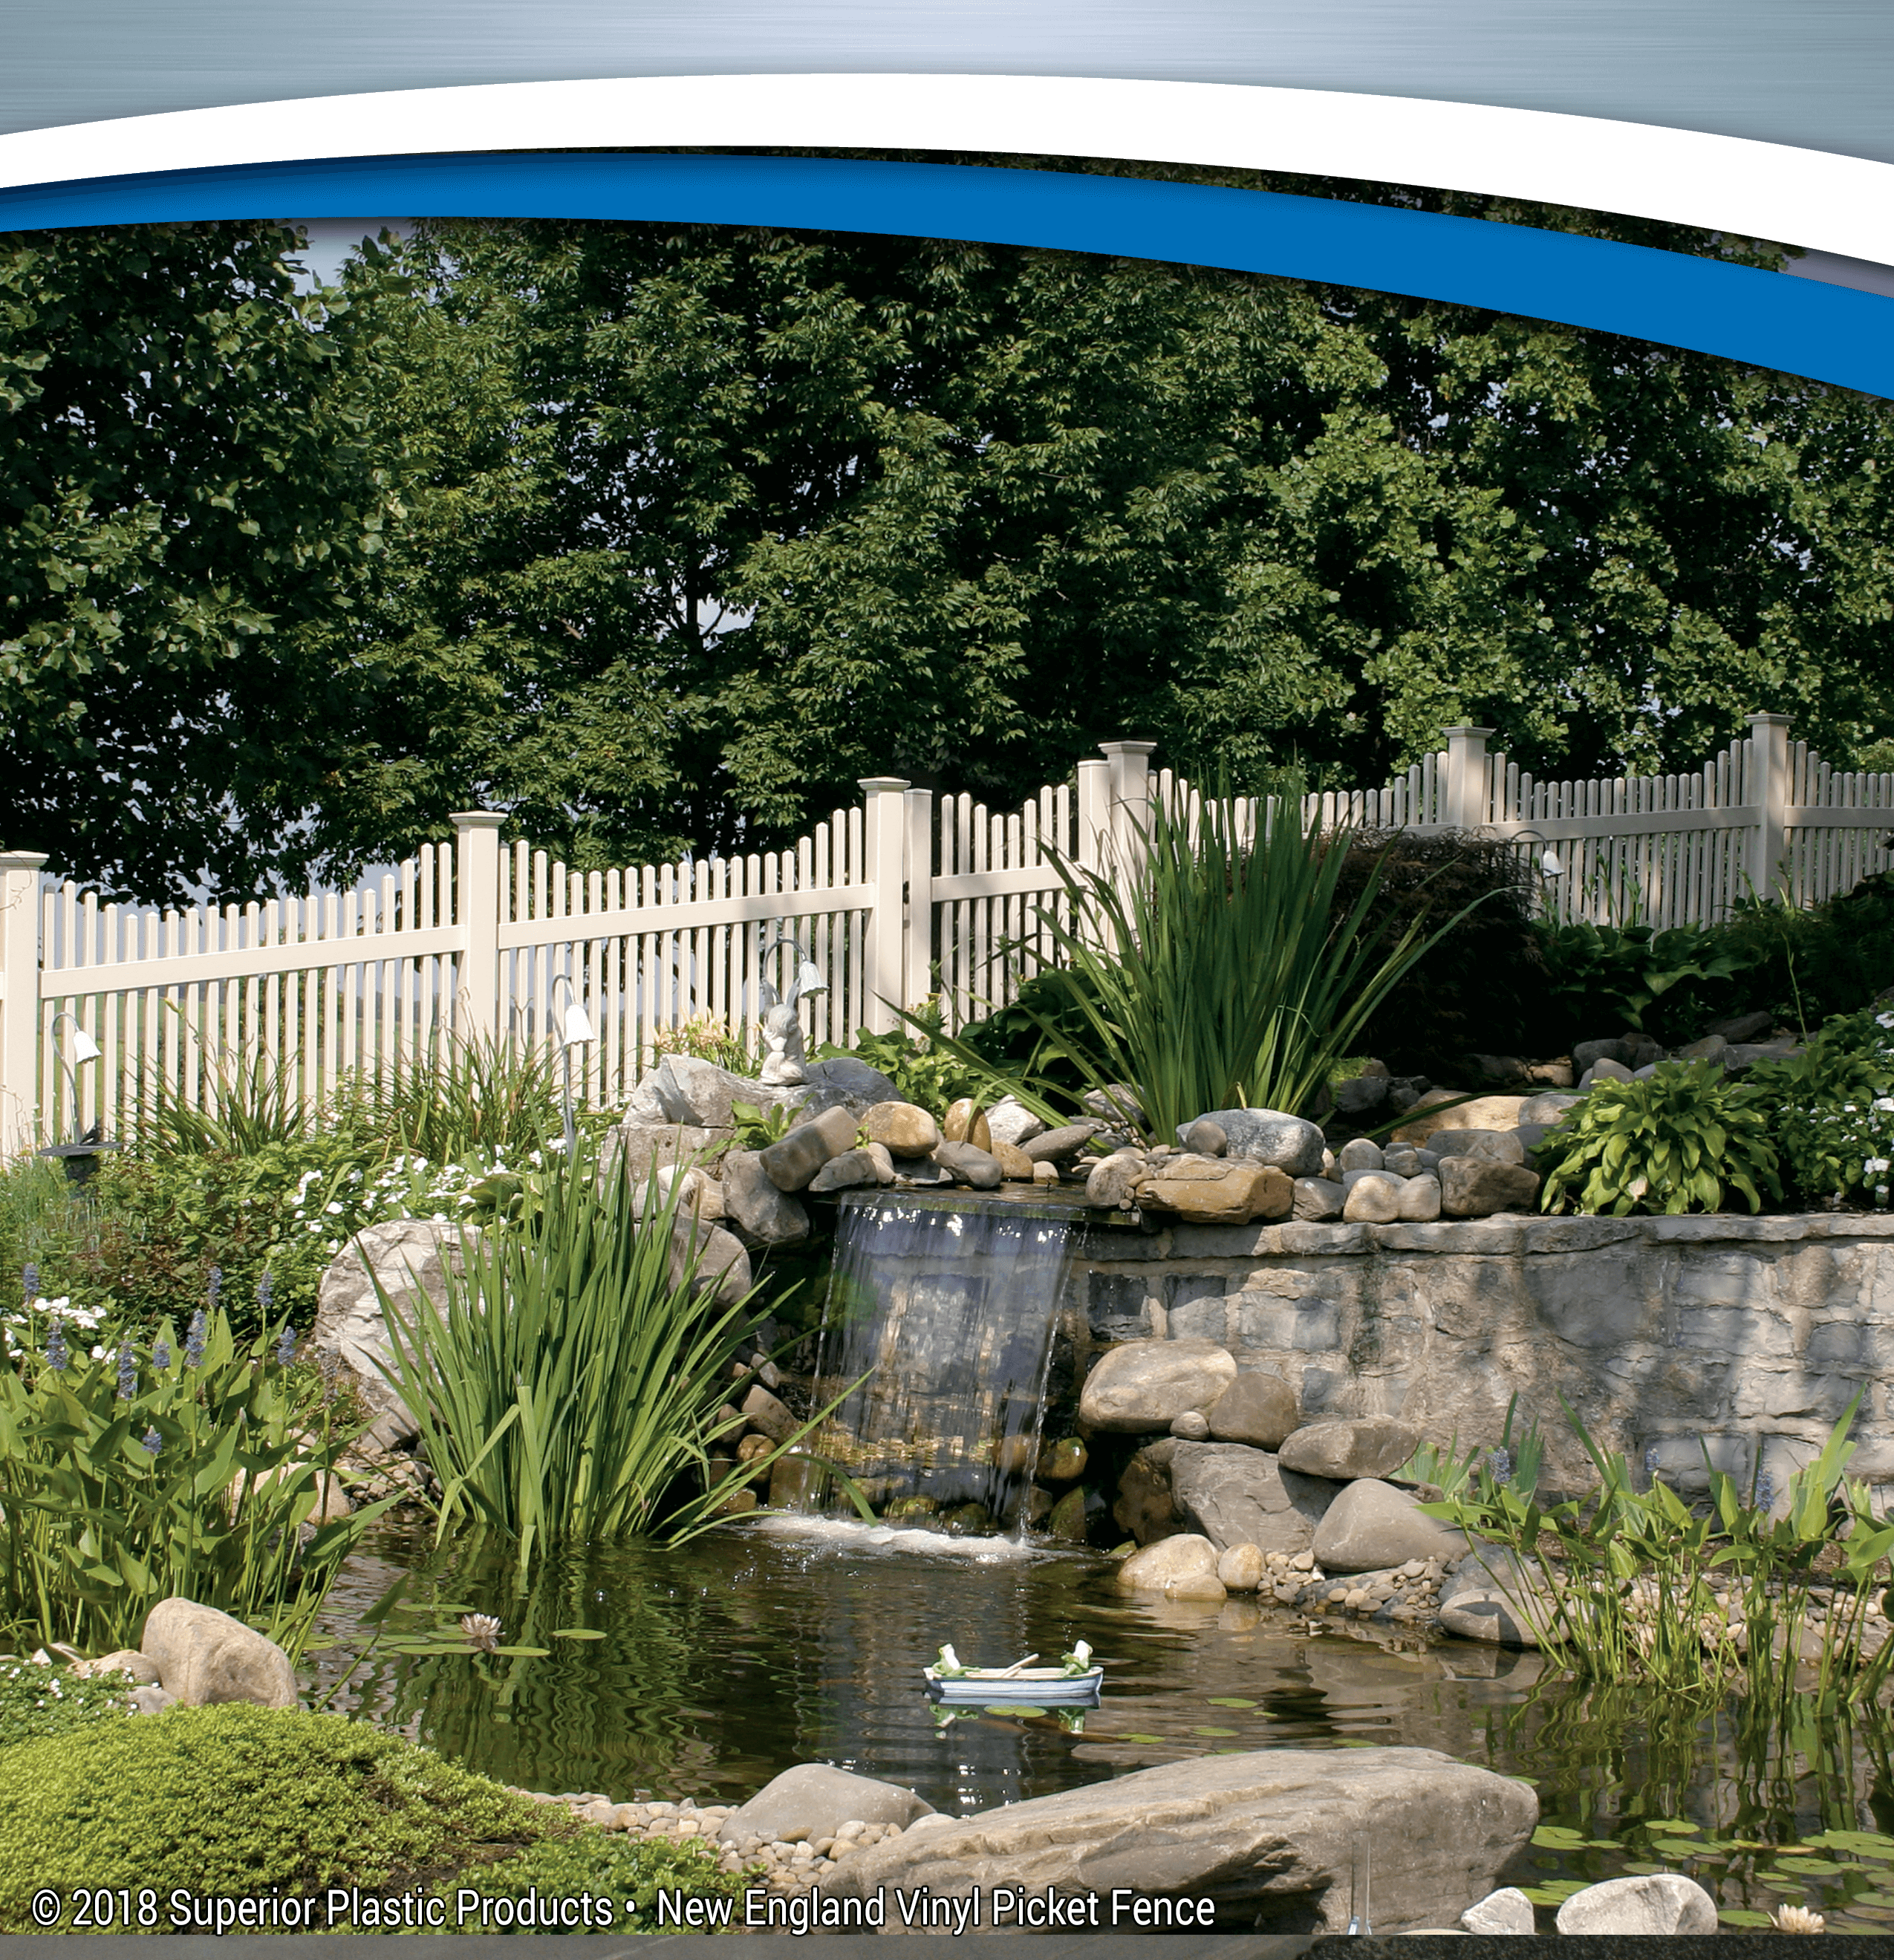 New England Vinyl Picket Fence - Superior Plastic Products